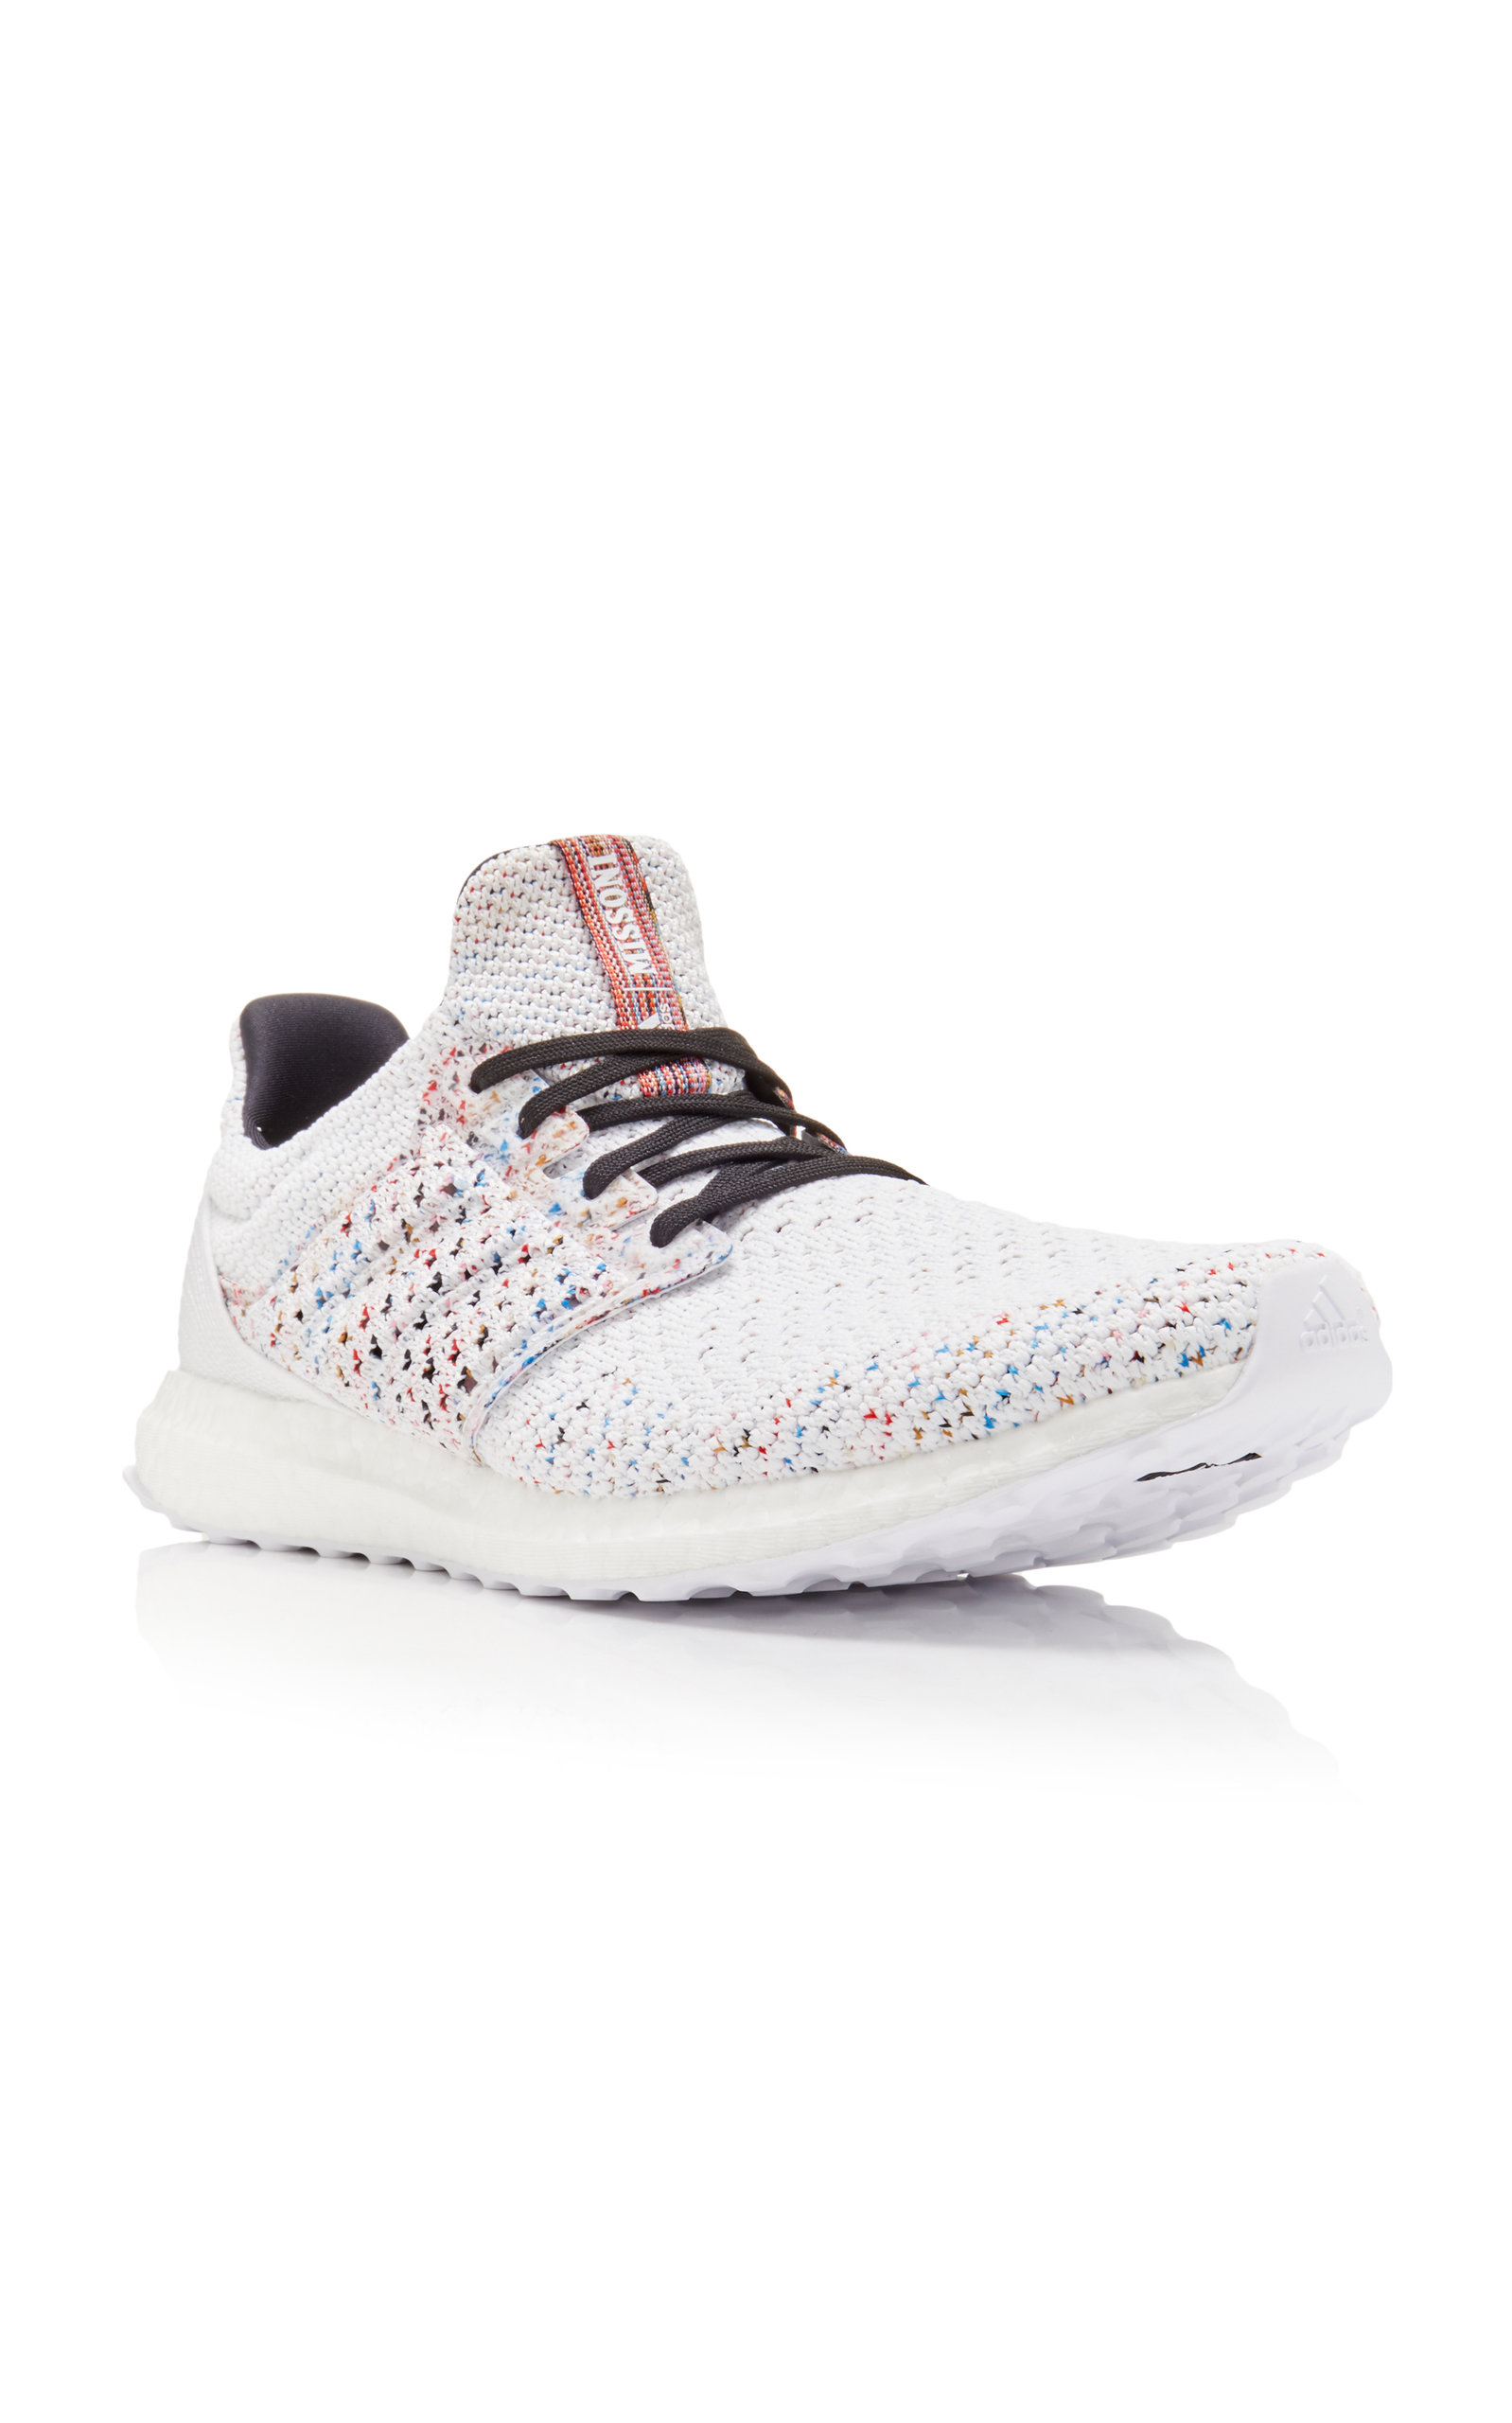 ccd98d1df286a adidas x MissoniUltraboost Clima Knit Sneakers. CLOSE. Loading. Loading.  Loading